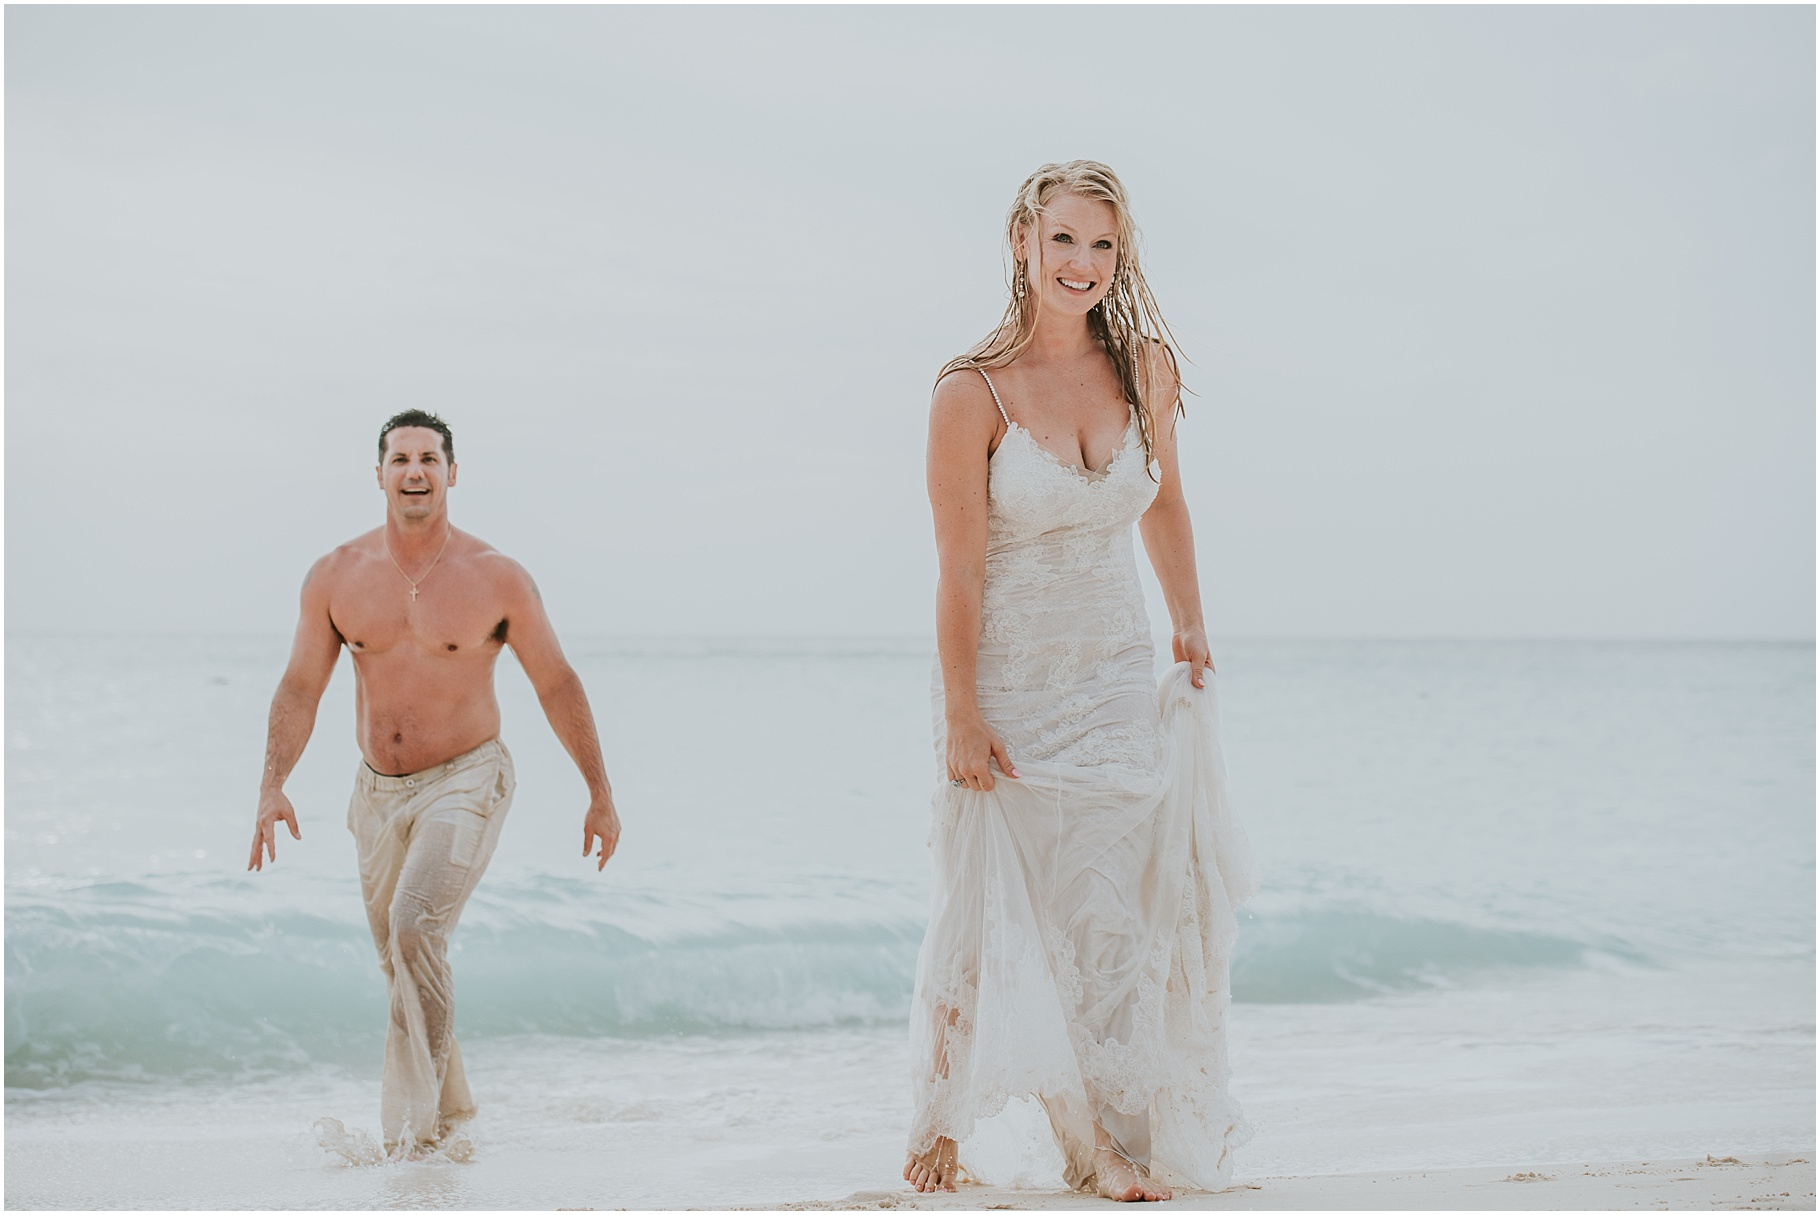 Trash the Dress Cayman Island Style | Lindsay and Michael Part 2 ...